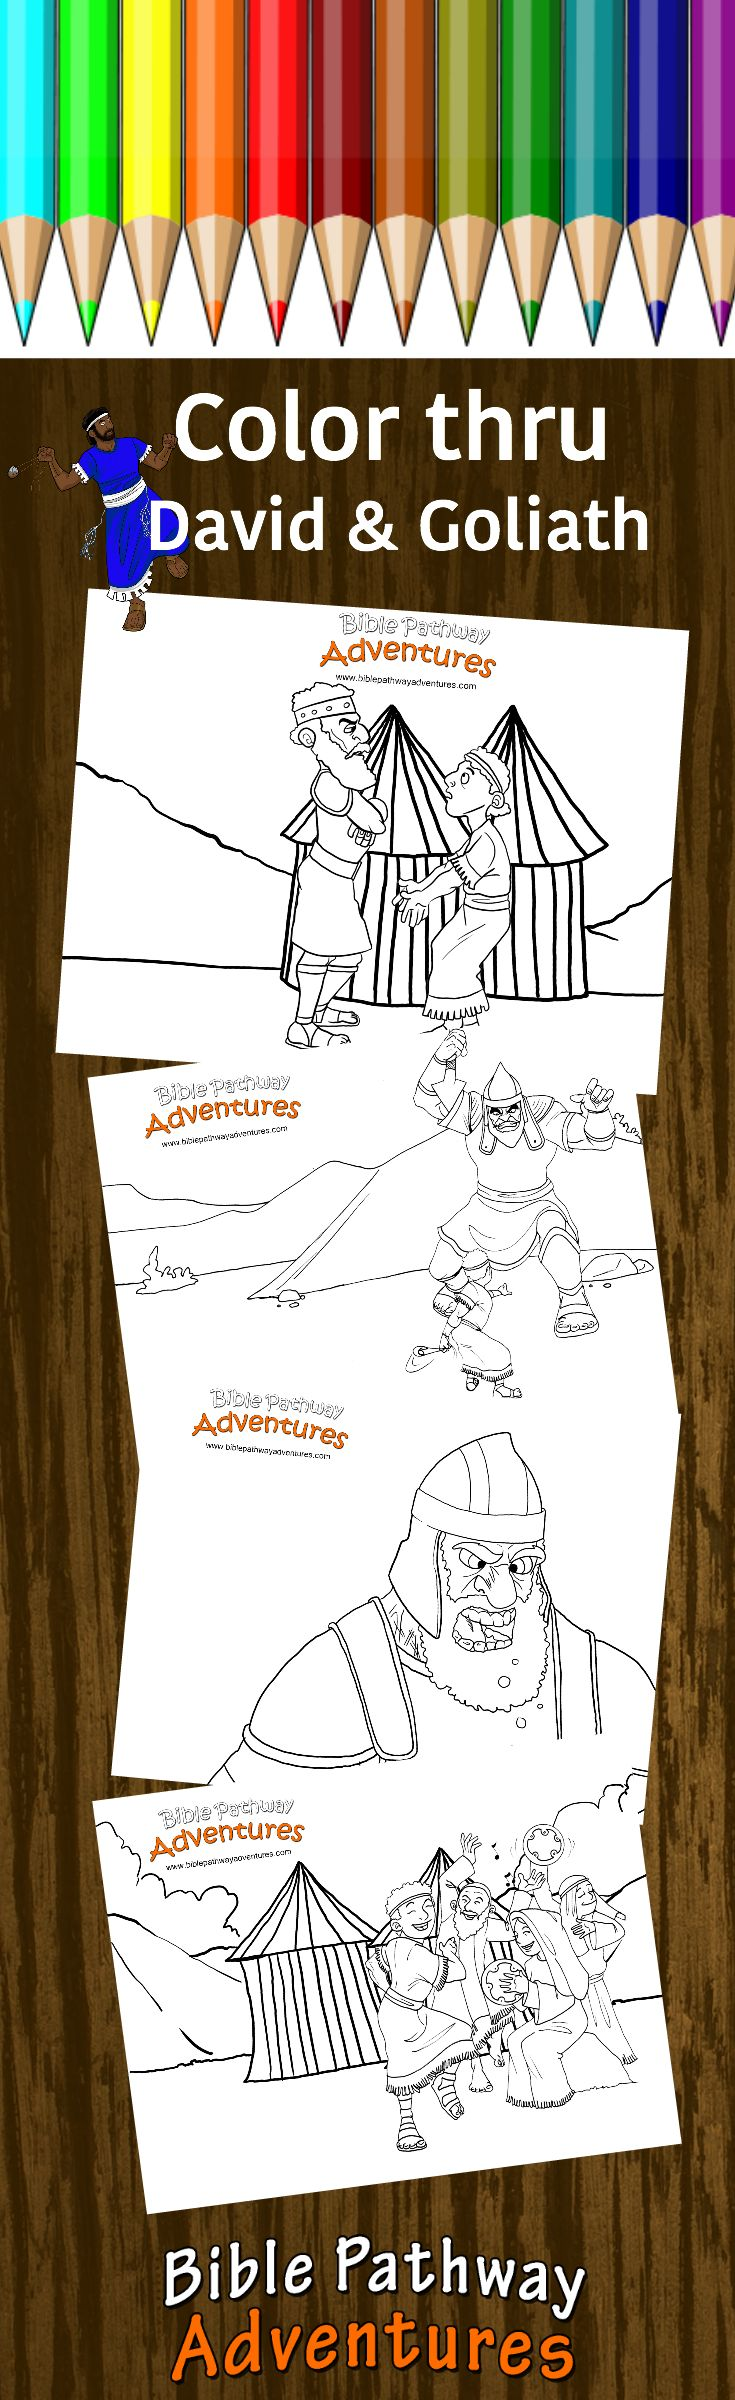 69 best david and goliath images on pinterest bible stories